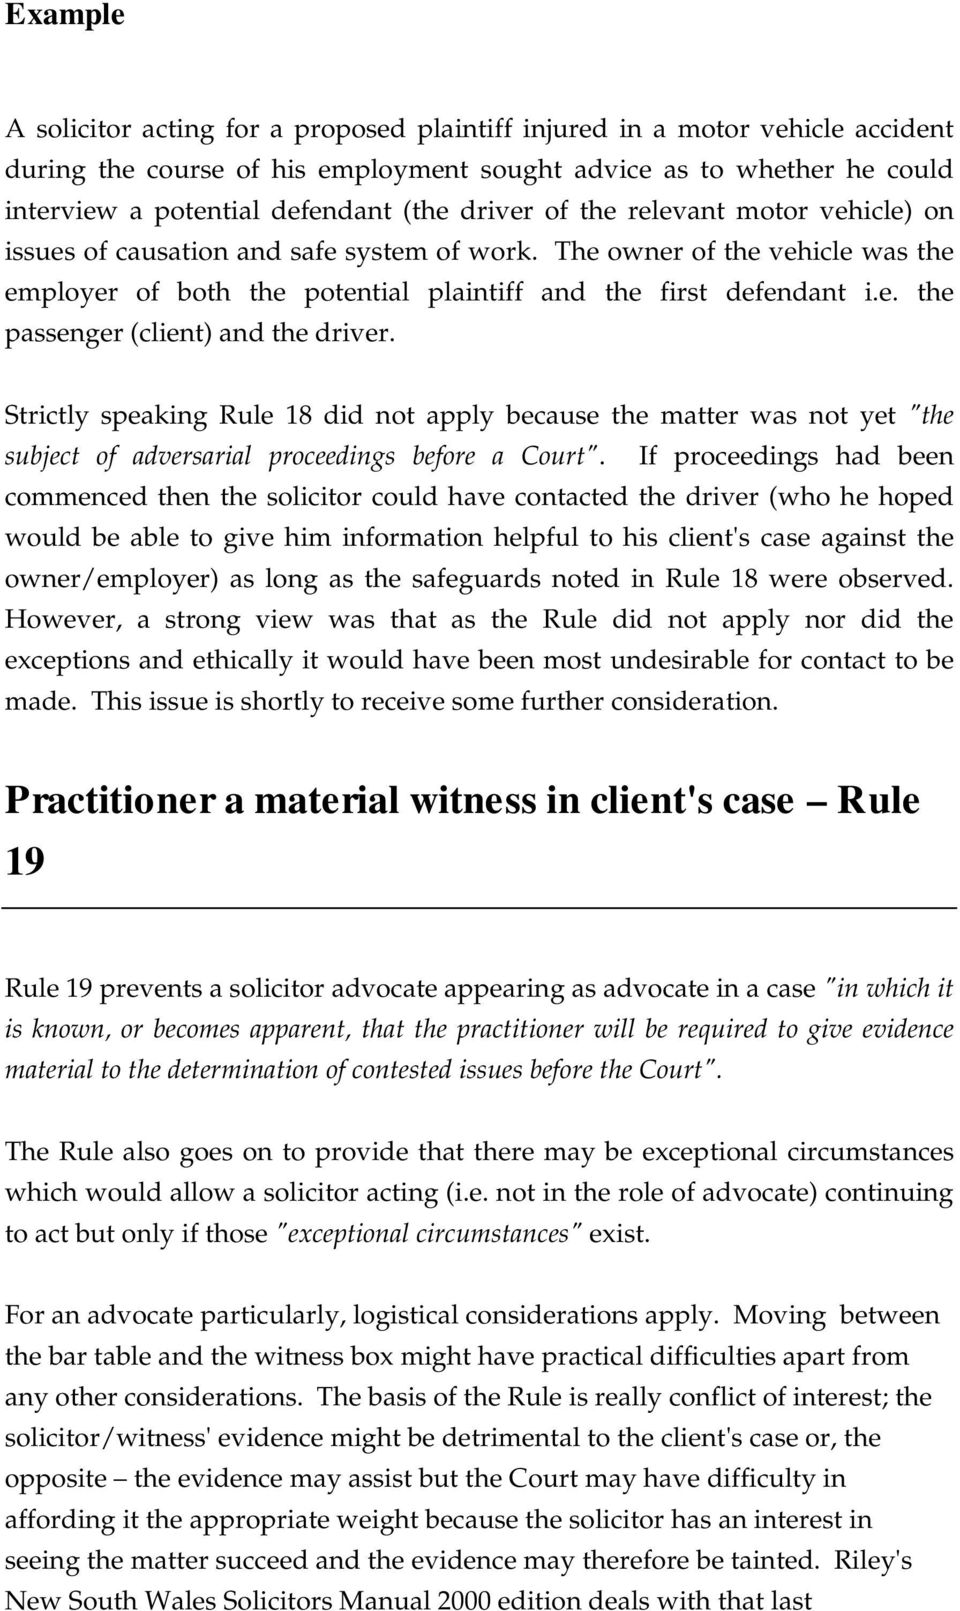 "Strictly speaking Rule 18 did not apply because the matter was not yet ""the subject of adversarial proceedings before a Court""."